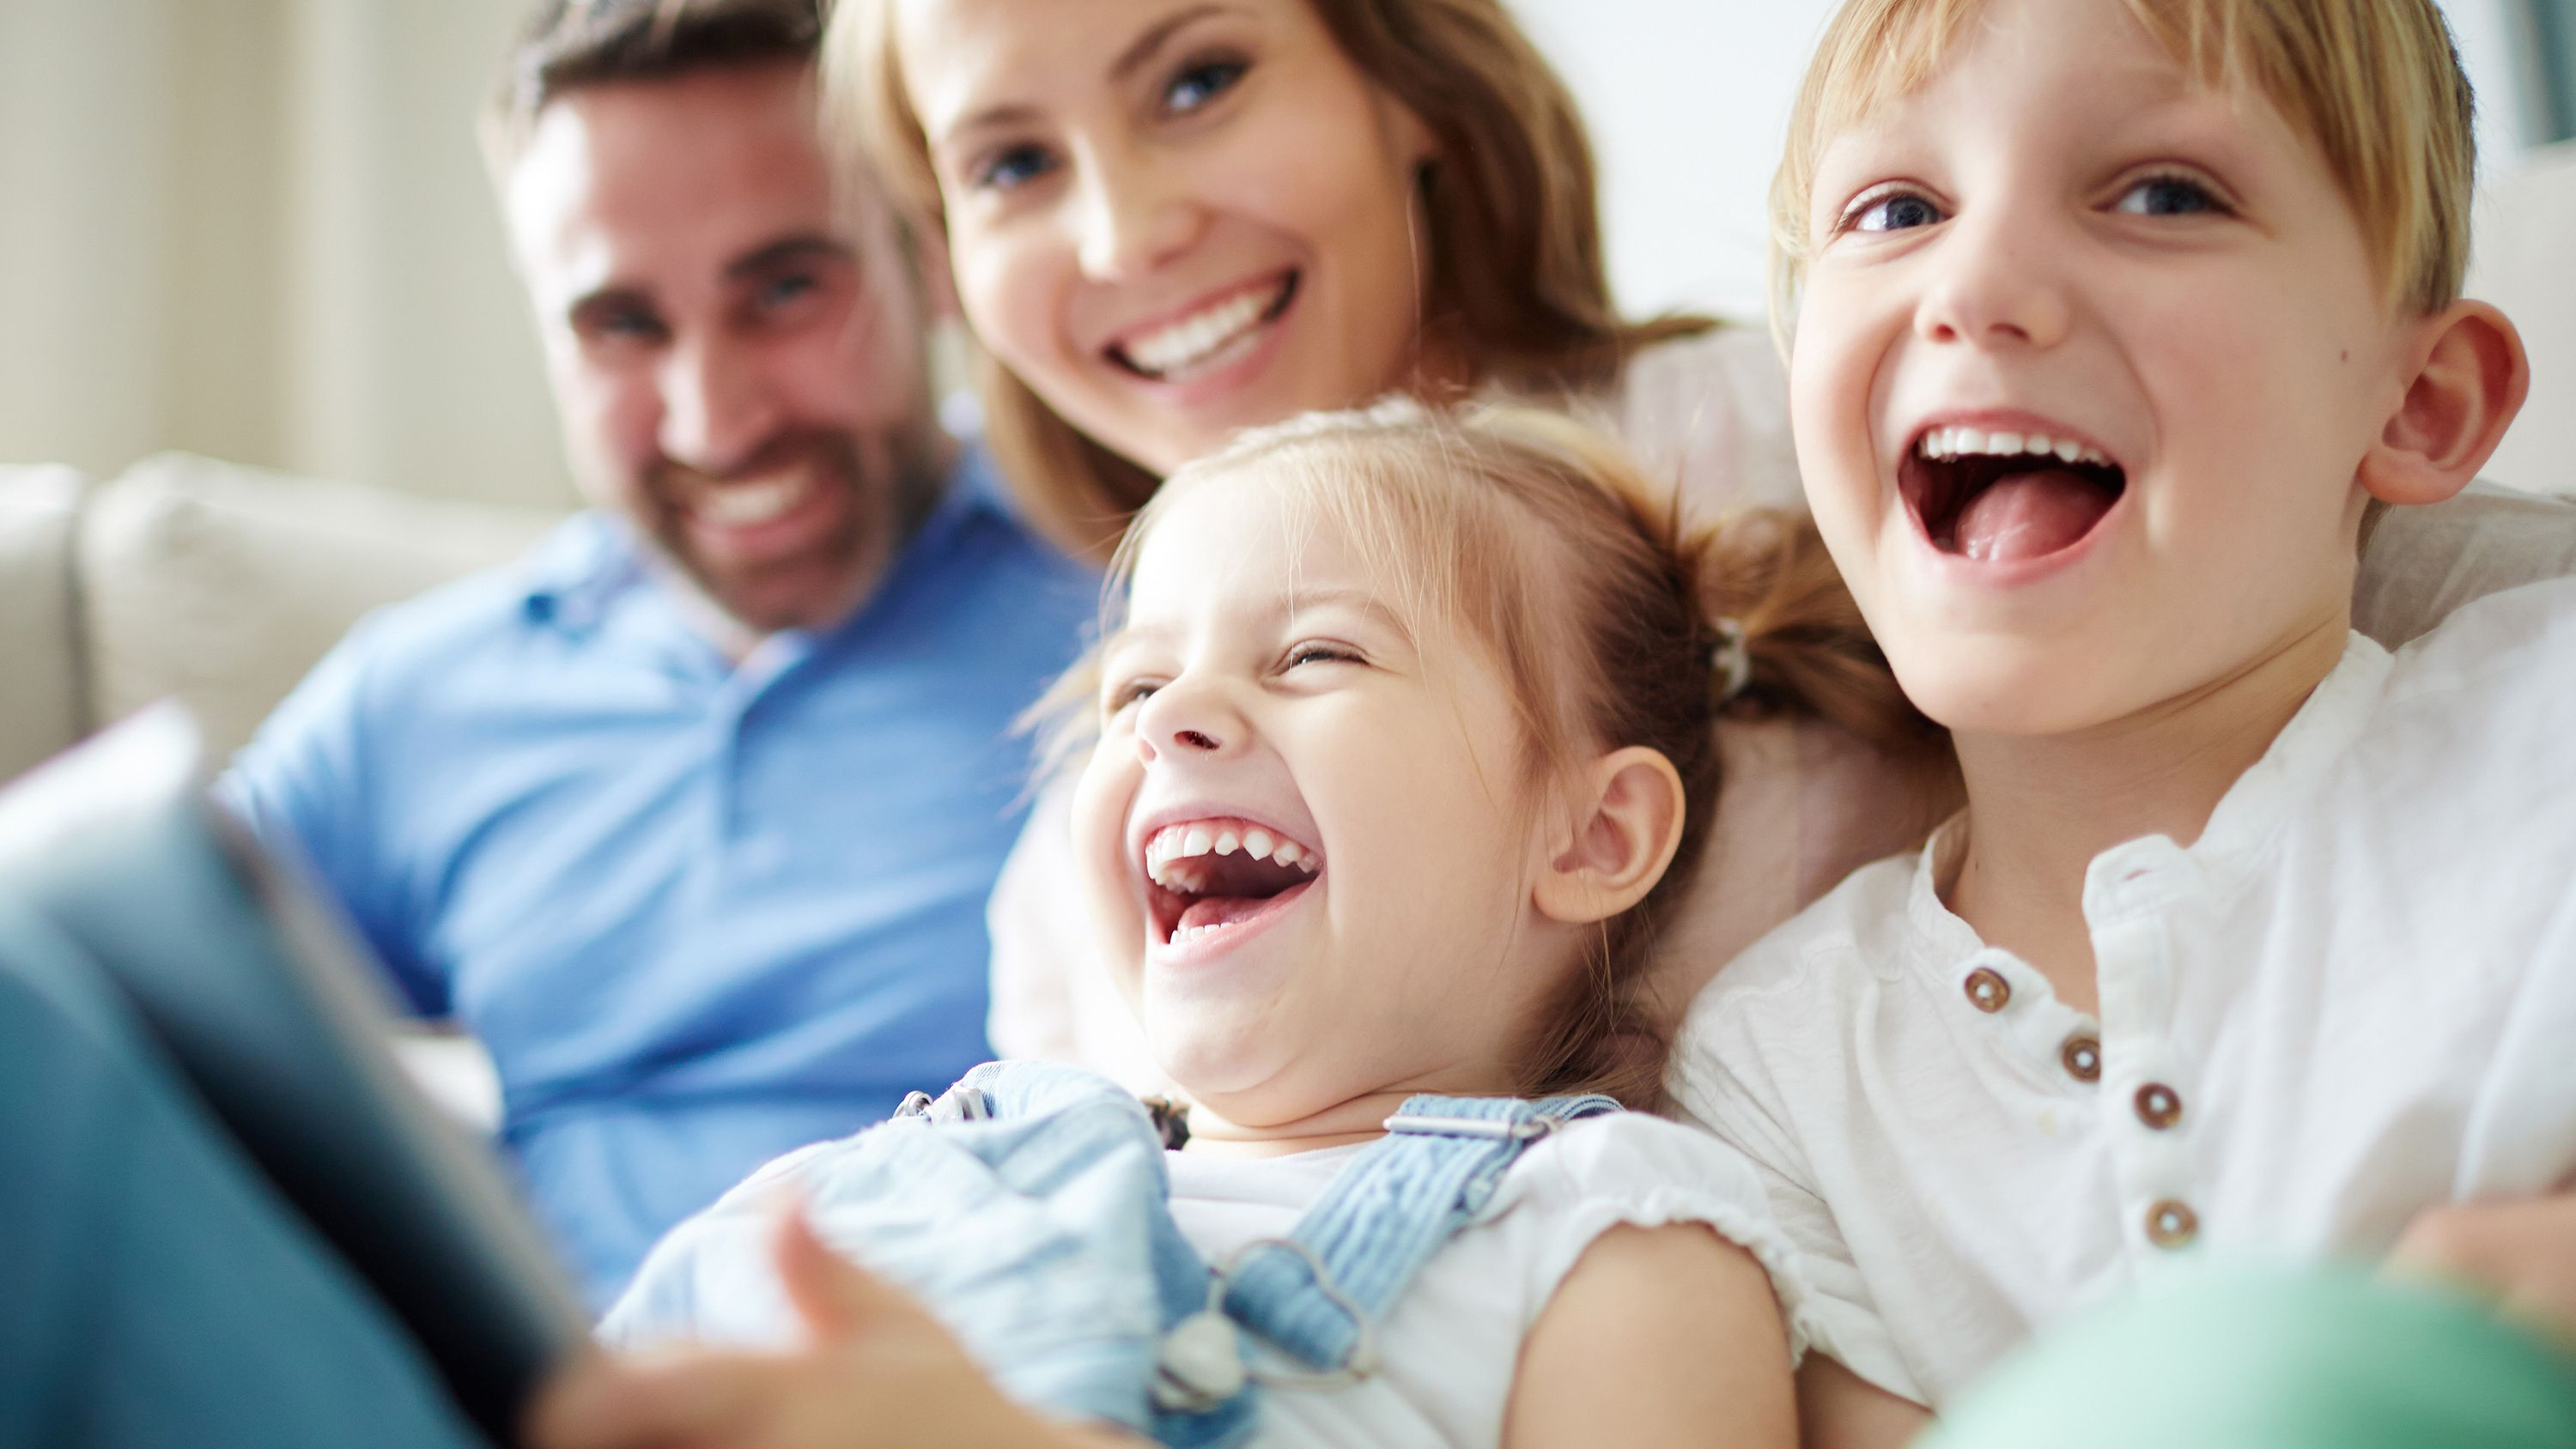 Cheerful family with laughing children on the couch